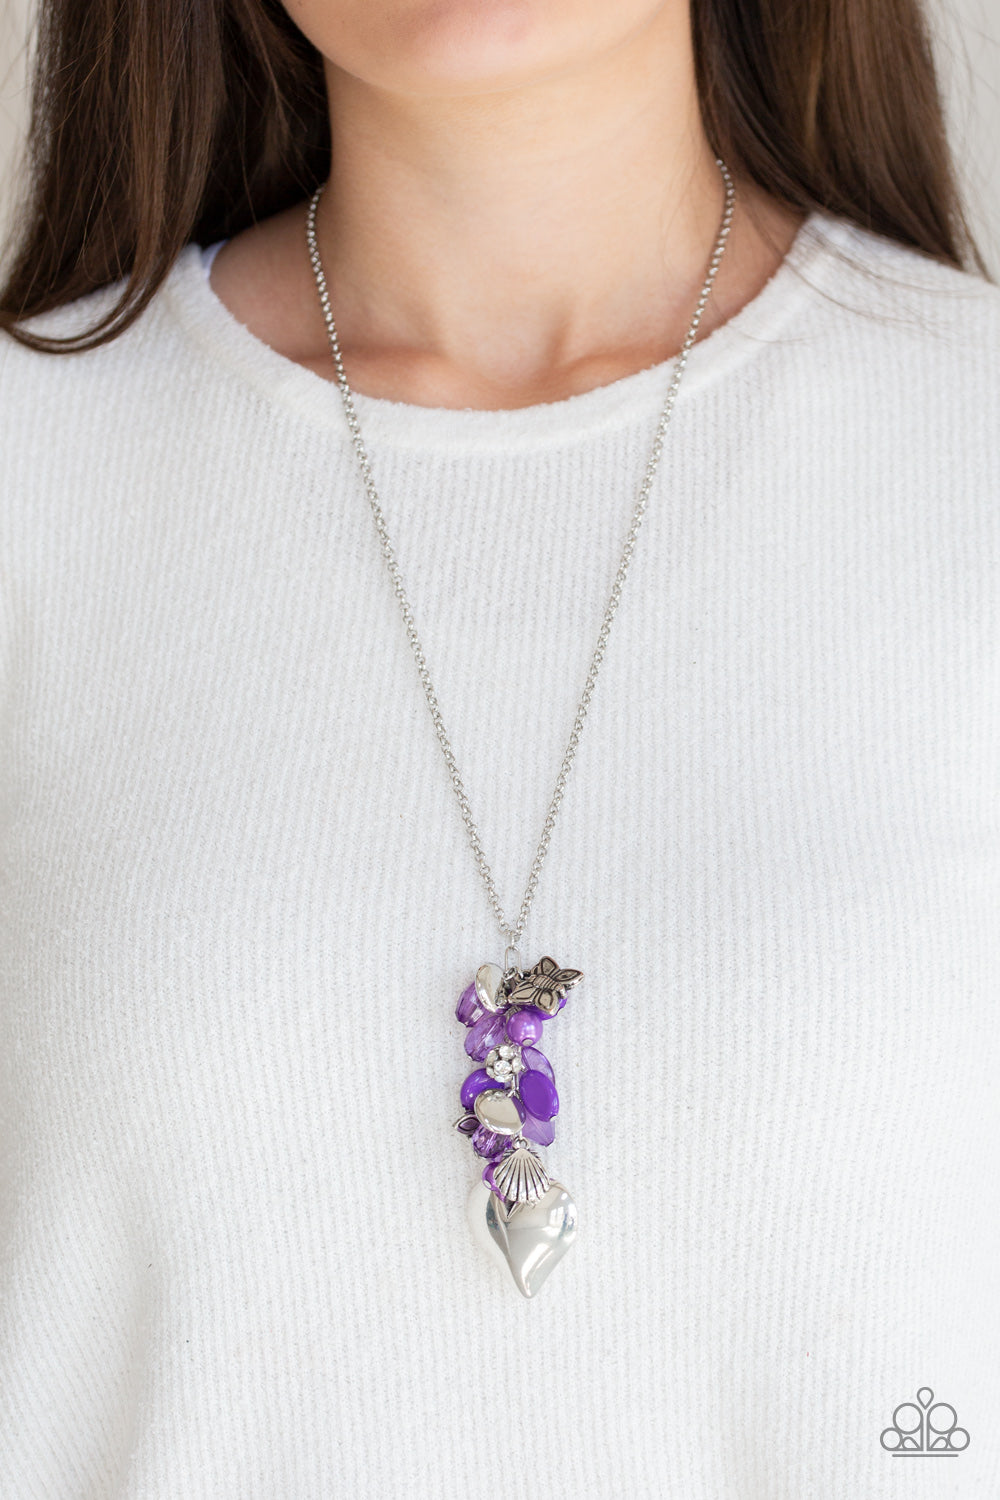 Infused with an array of purple beads, a collection of antiqued silver shell and butterfly charms trickle along the bottom of a shimmery silver chain. Complemented with glittery white rhinestone encrusted beads, a dramatically oversized silver heart pendant swings from the bottom of the clustered tassel for a whimsical finish. Features an adjustable clasp closure.  Sold as one individual necklace. Includes one pair of matching earrings.  Always nickel and lead free.